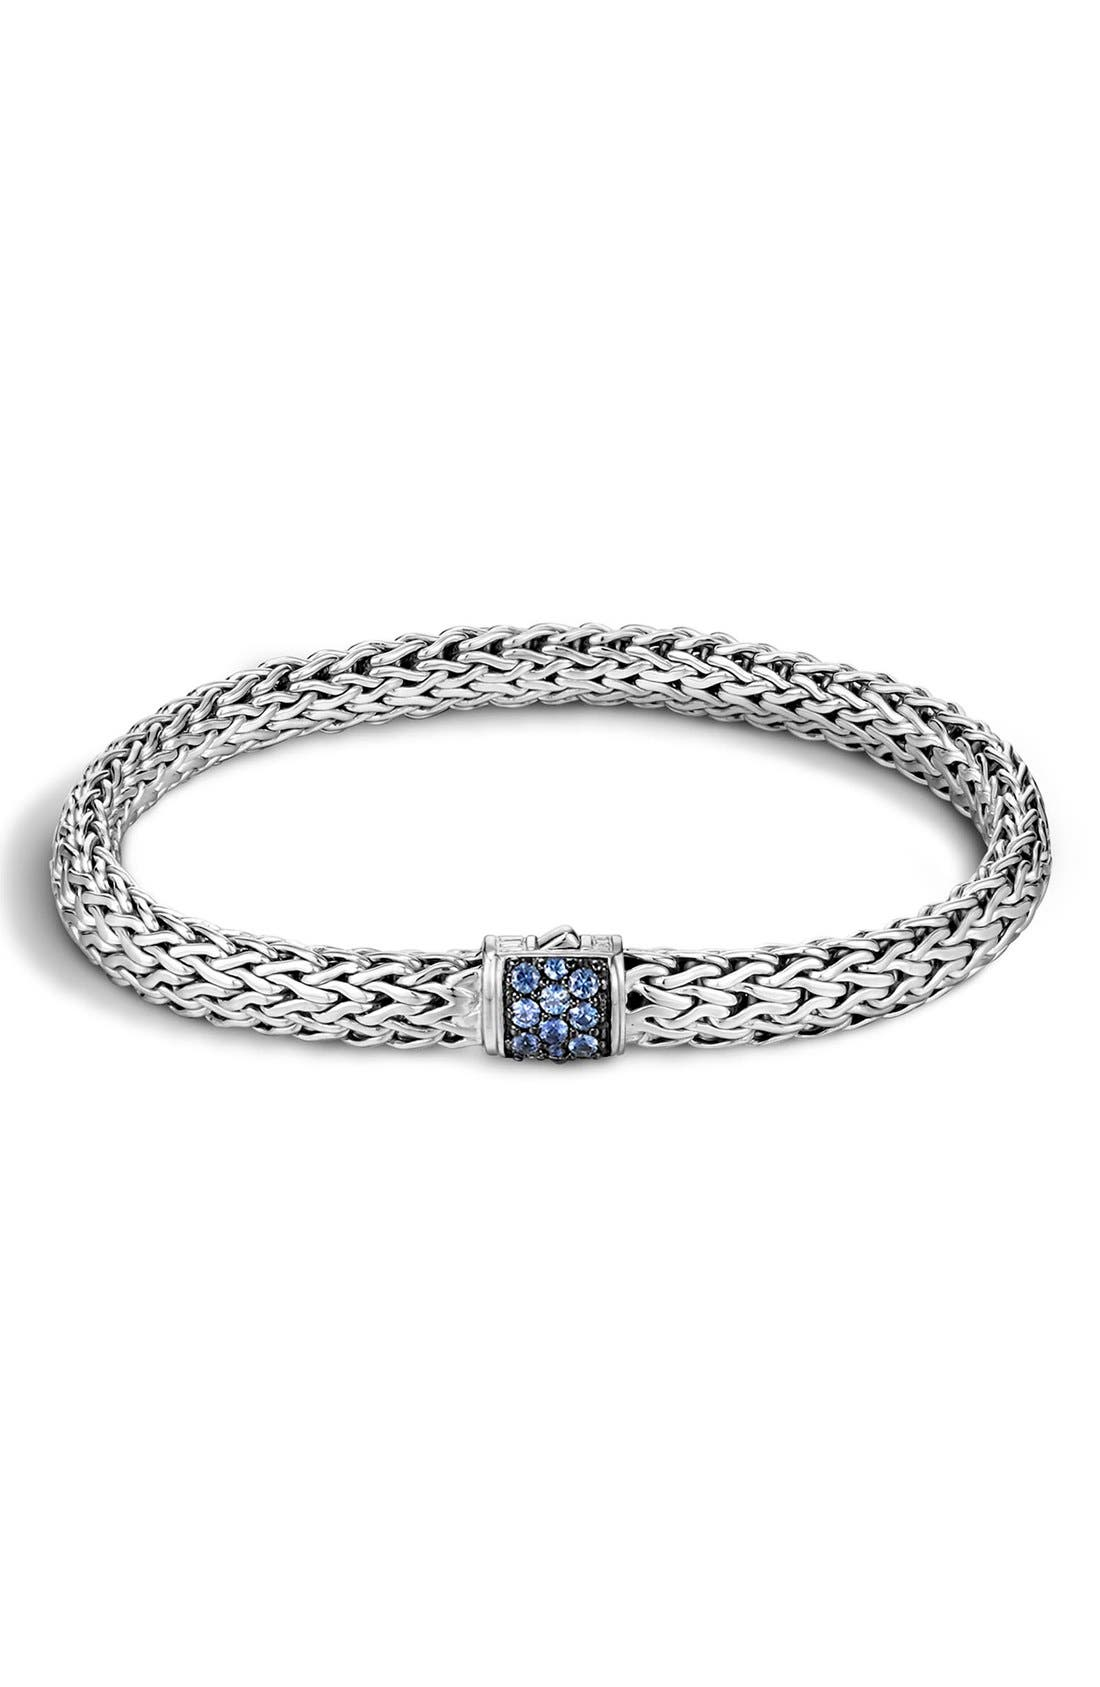 Classic Chain 6.5mm Bracelet,                         Main,                         color, Silver/ Blue Sapphire